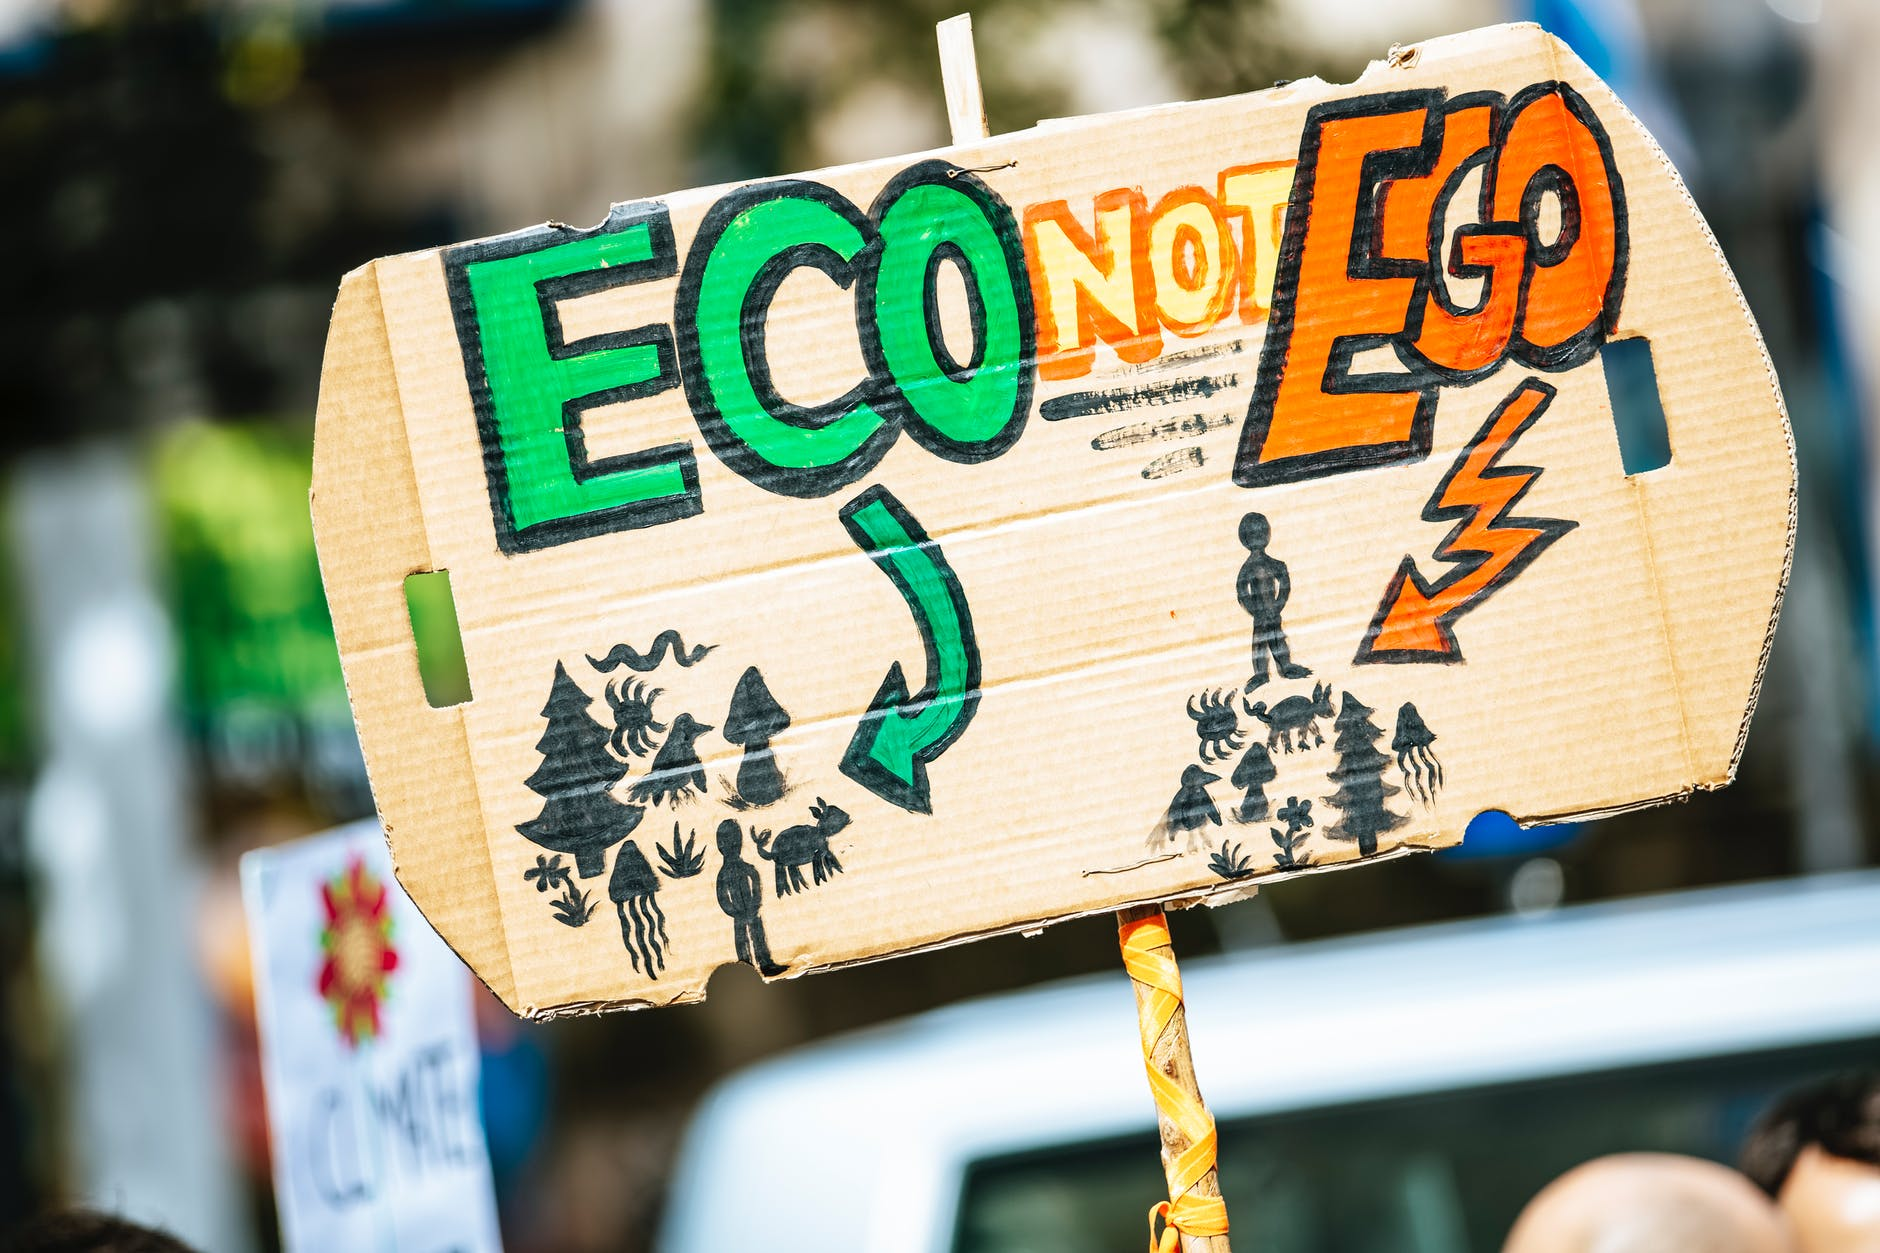 eco not ego climate change advocacy